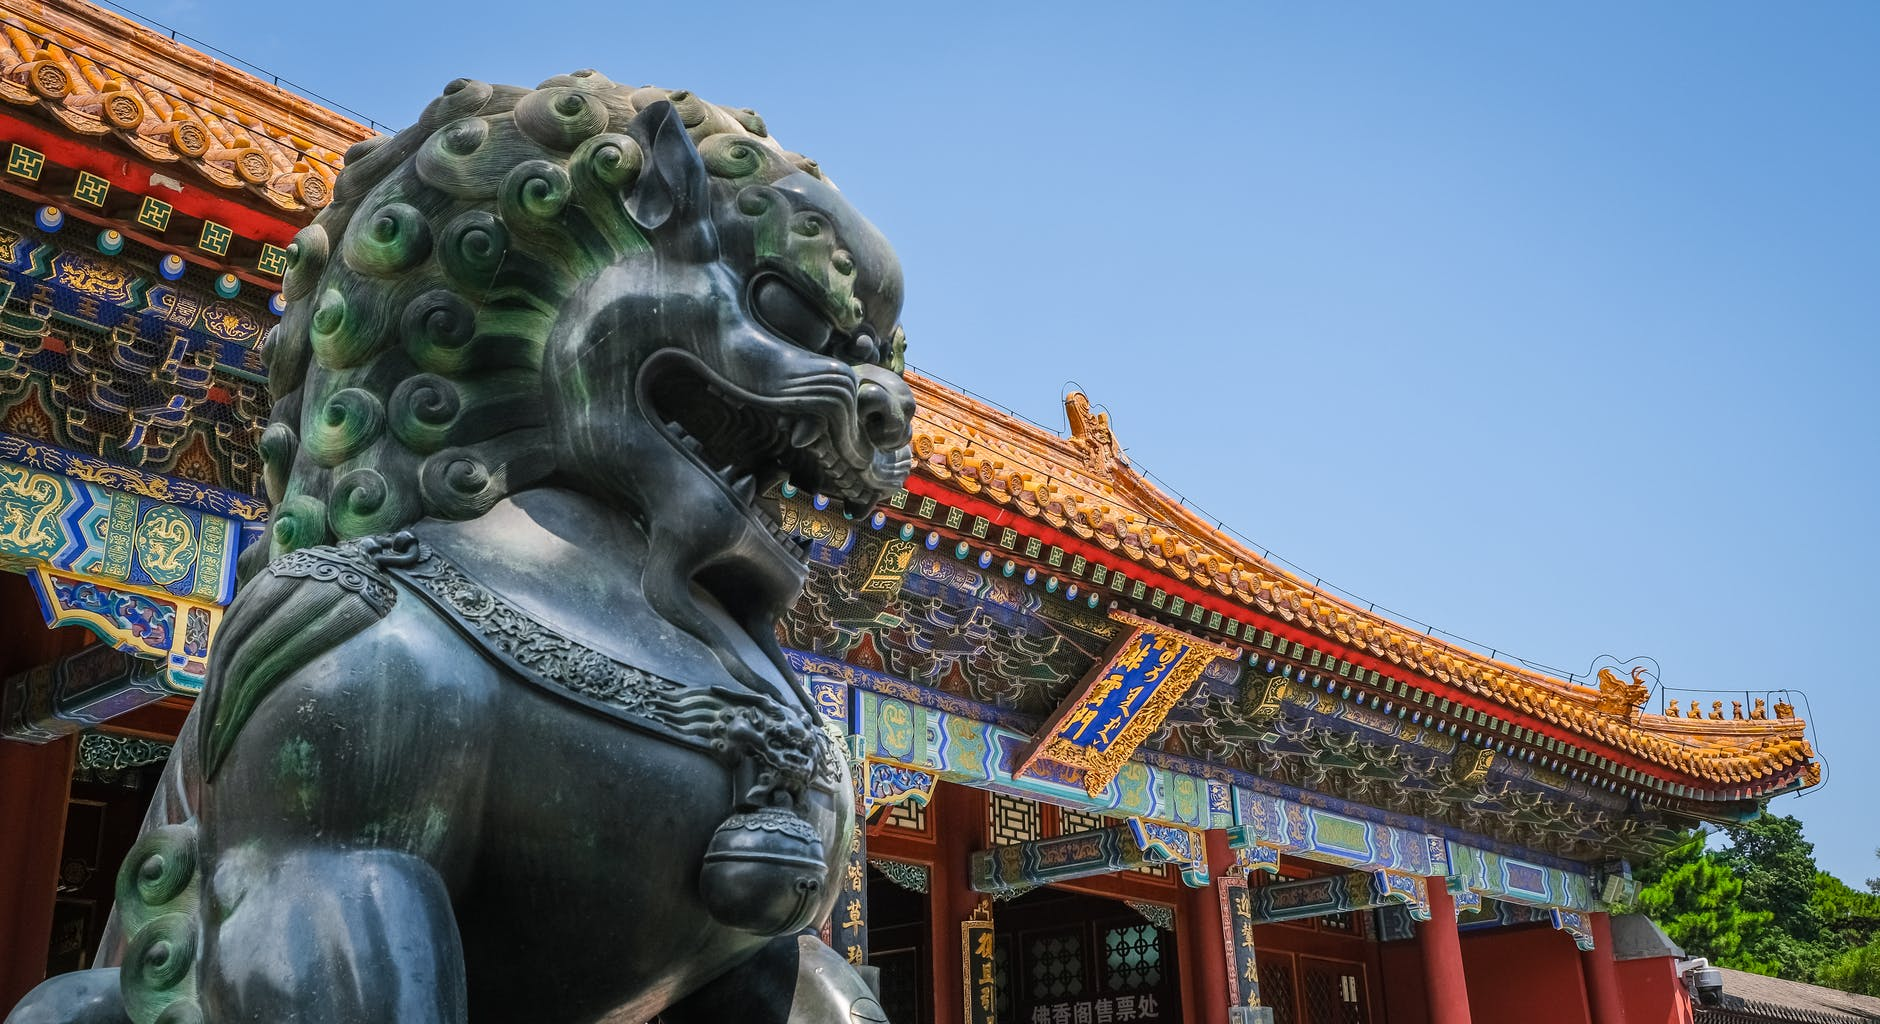 The exterior of a Chinese building, and the Stone Lion statue outside it.